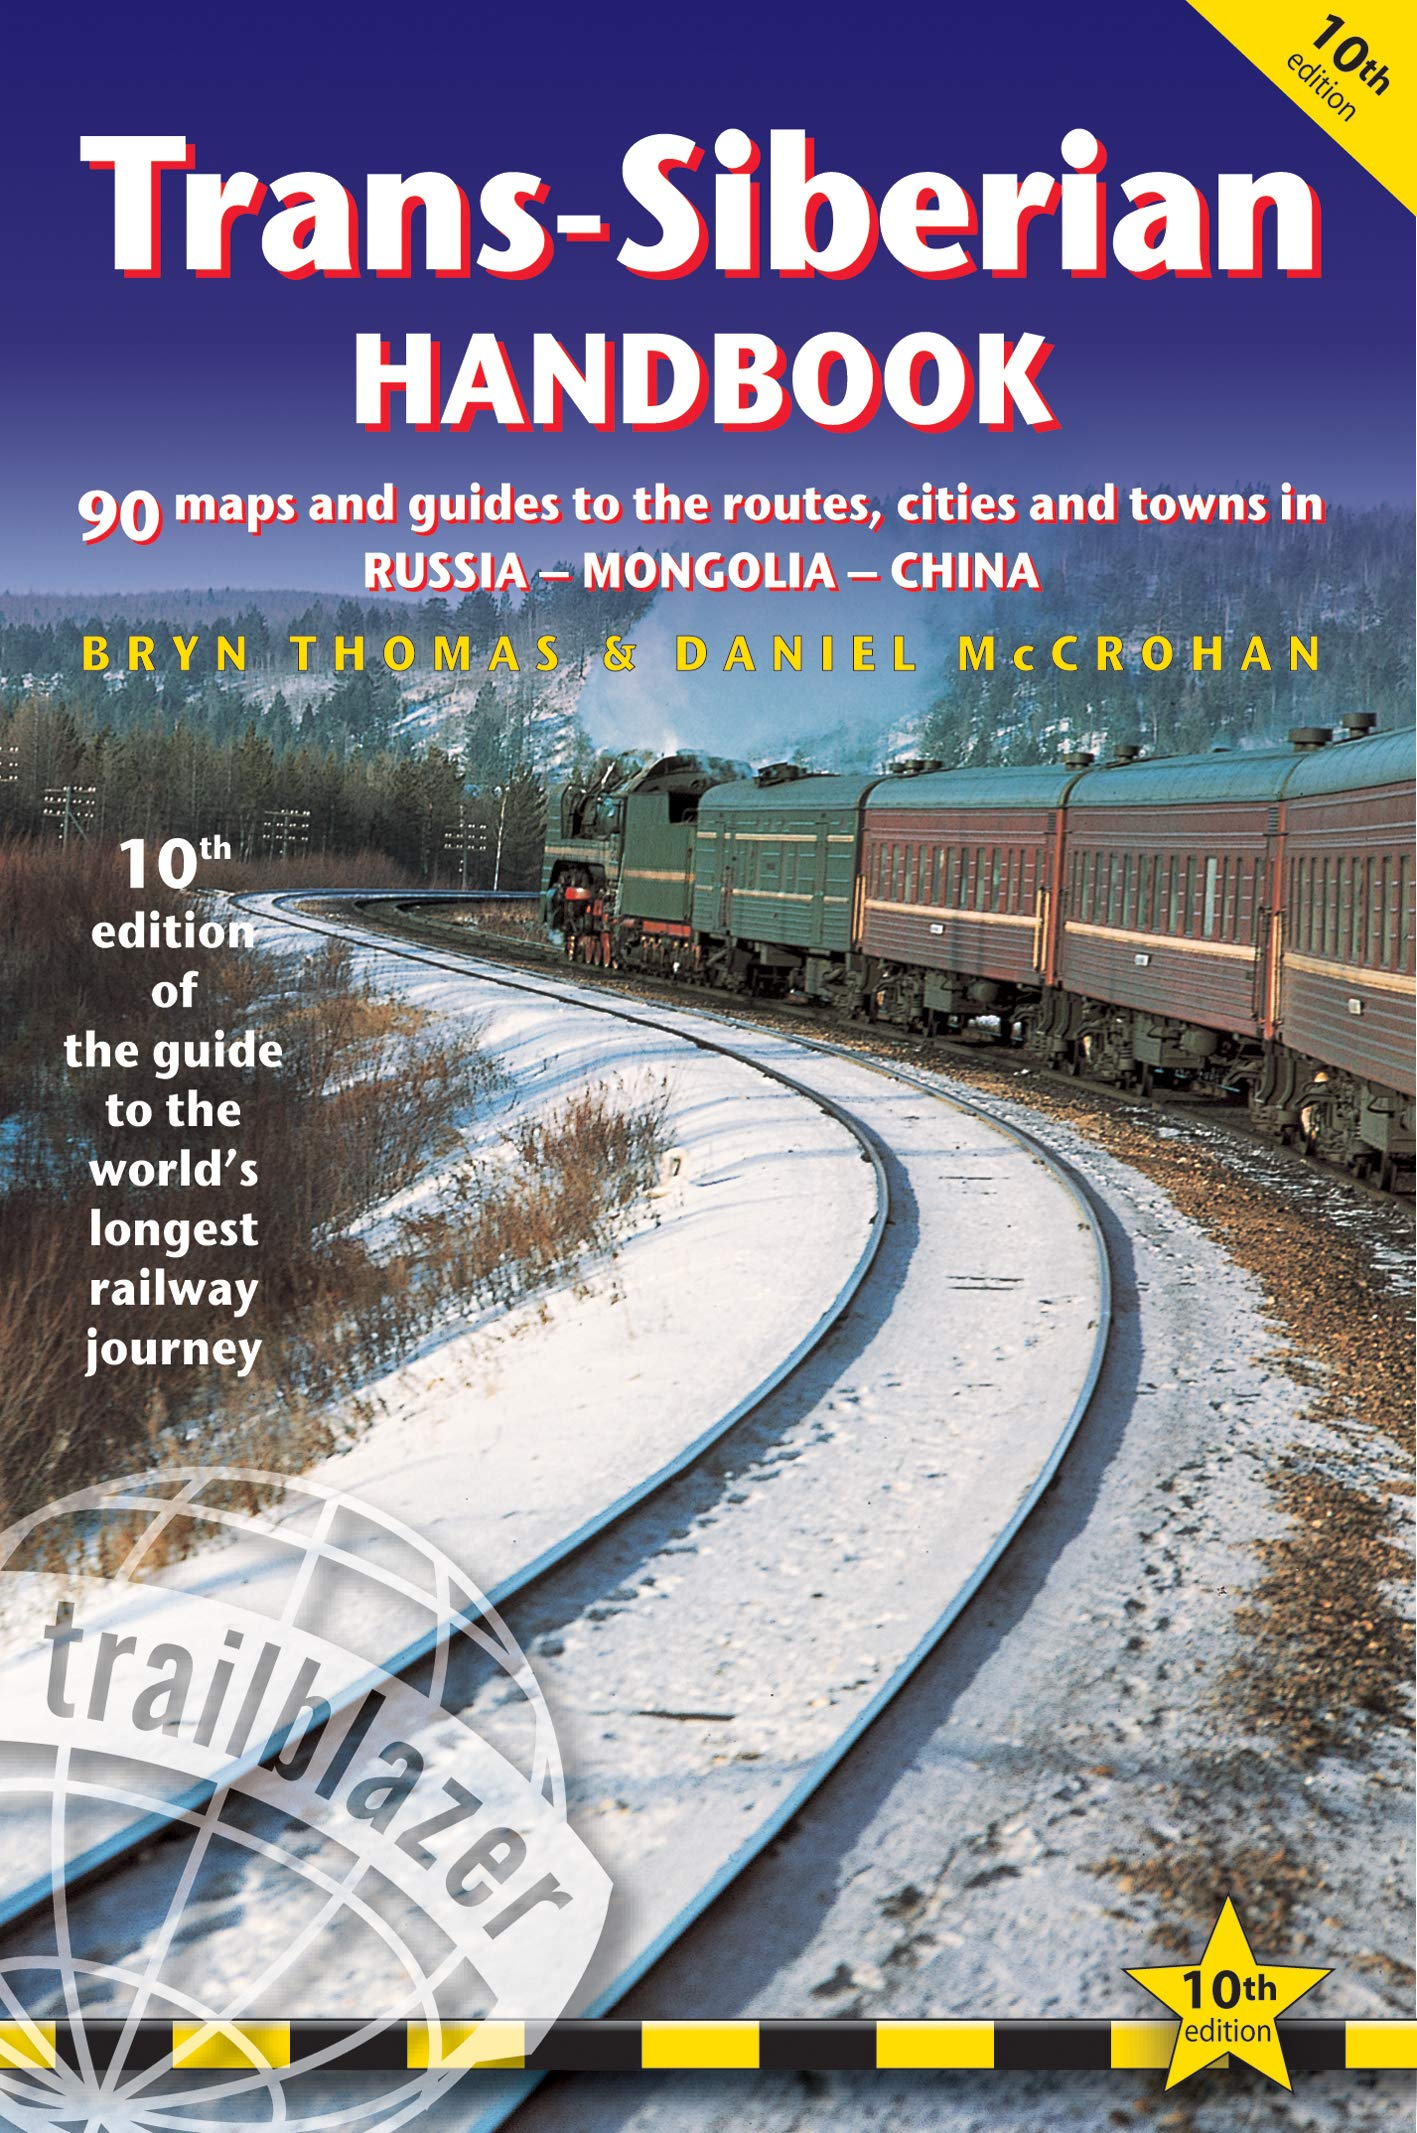 Guides to the Worlds Longest Railway Journey Trans-Siberian Handbook 7th Edition